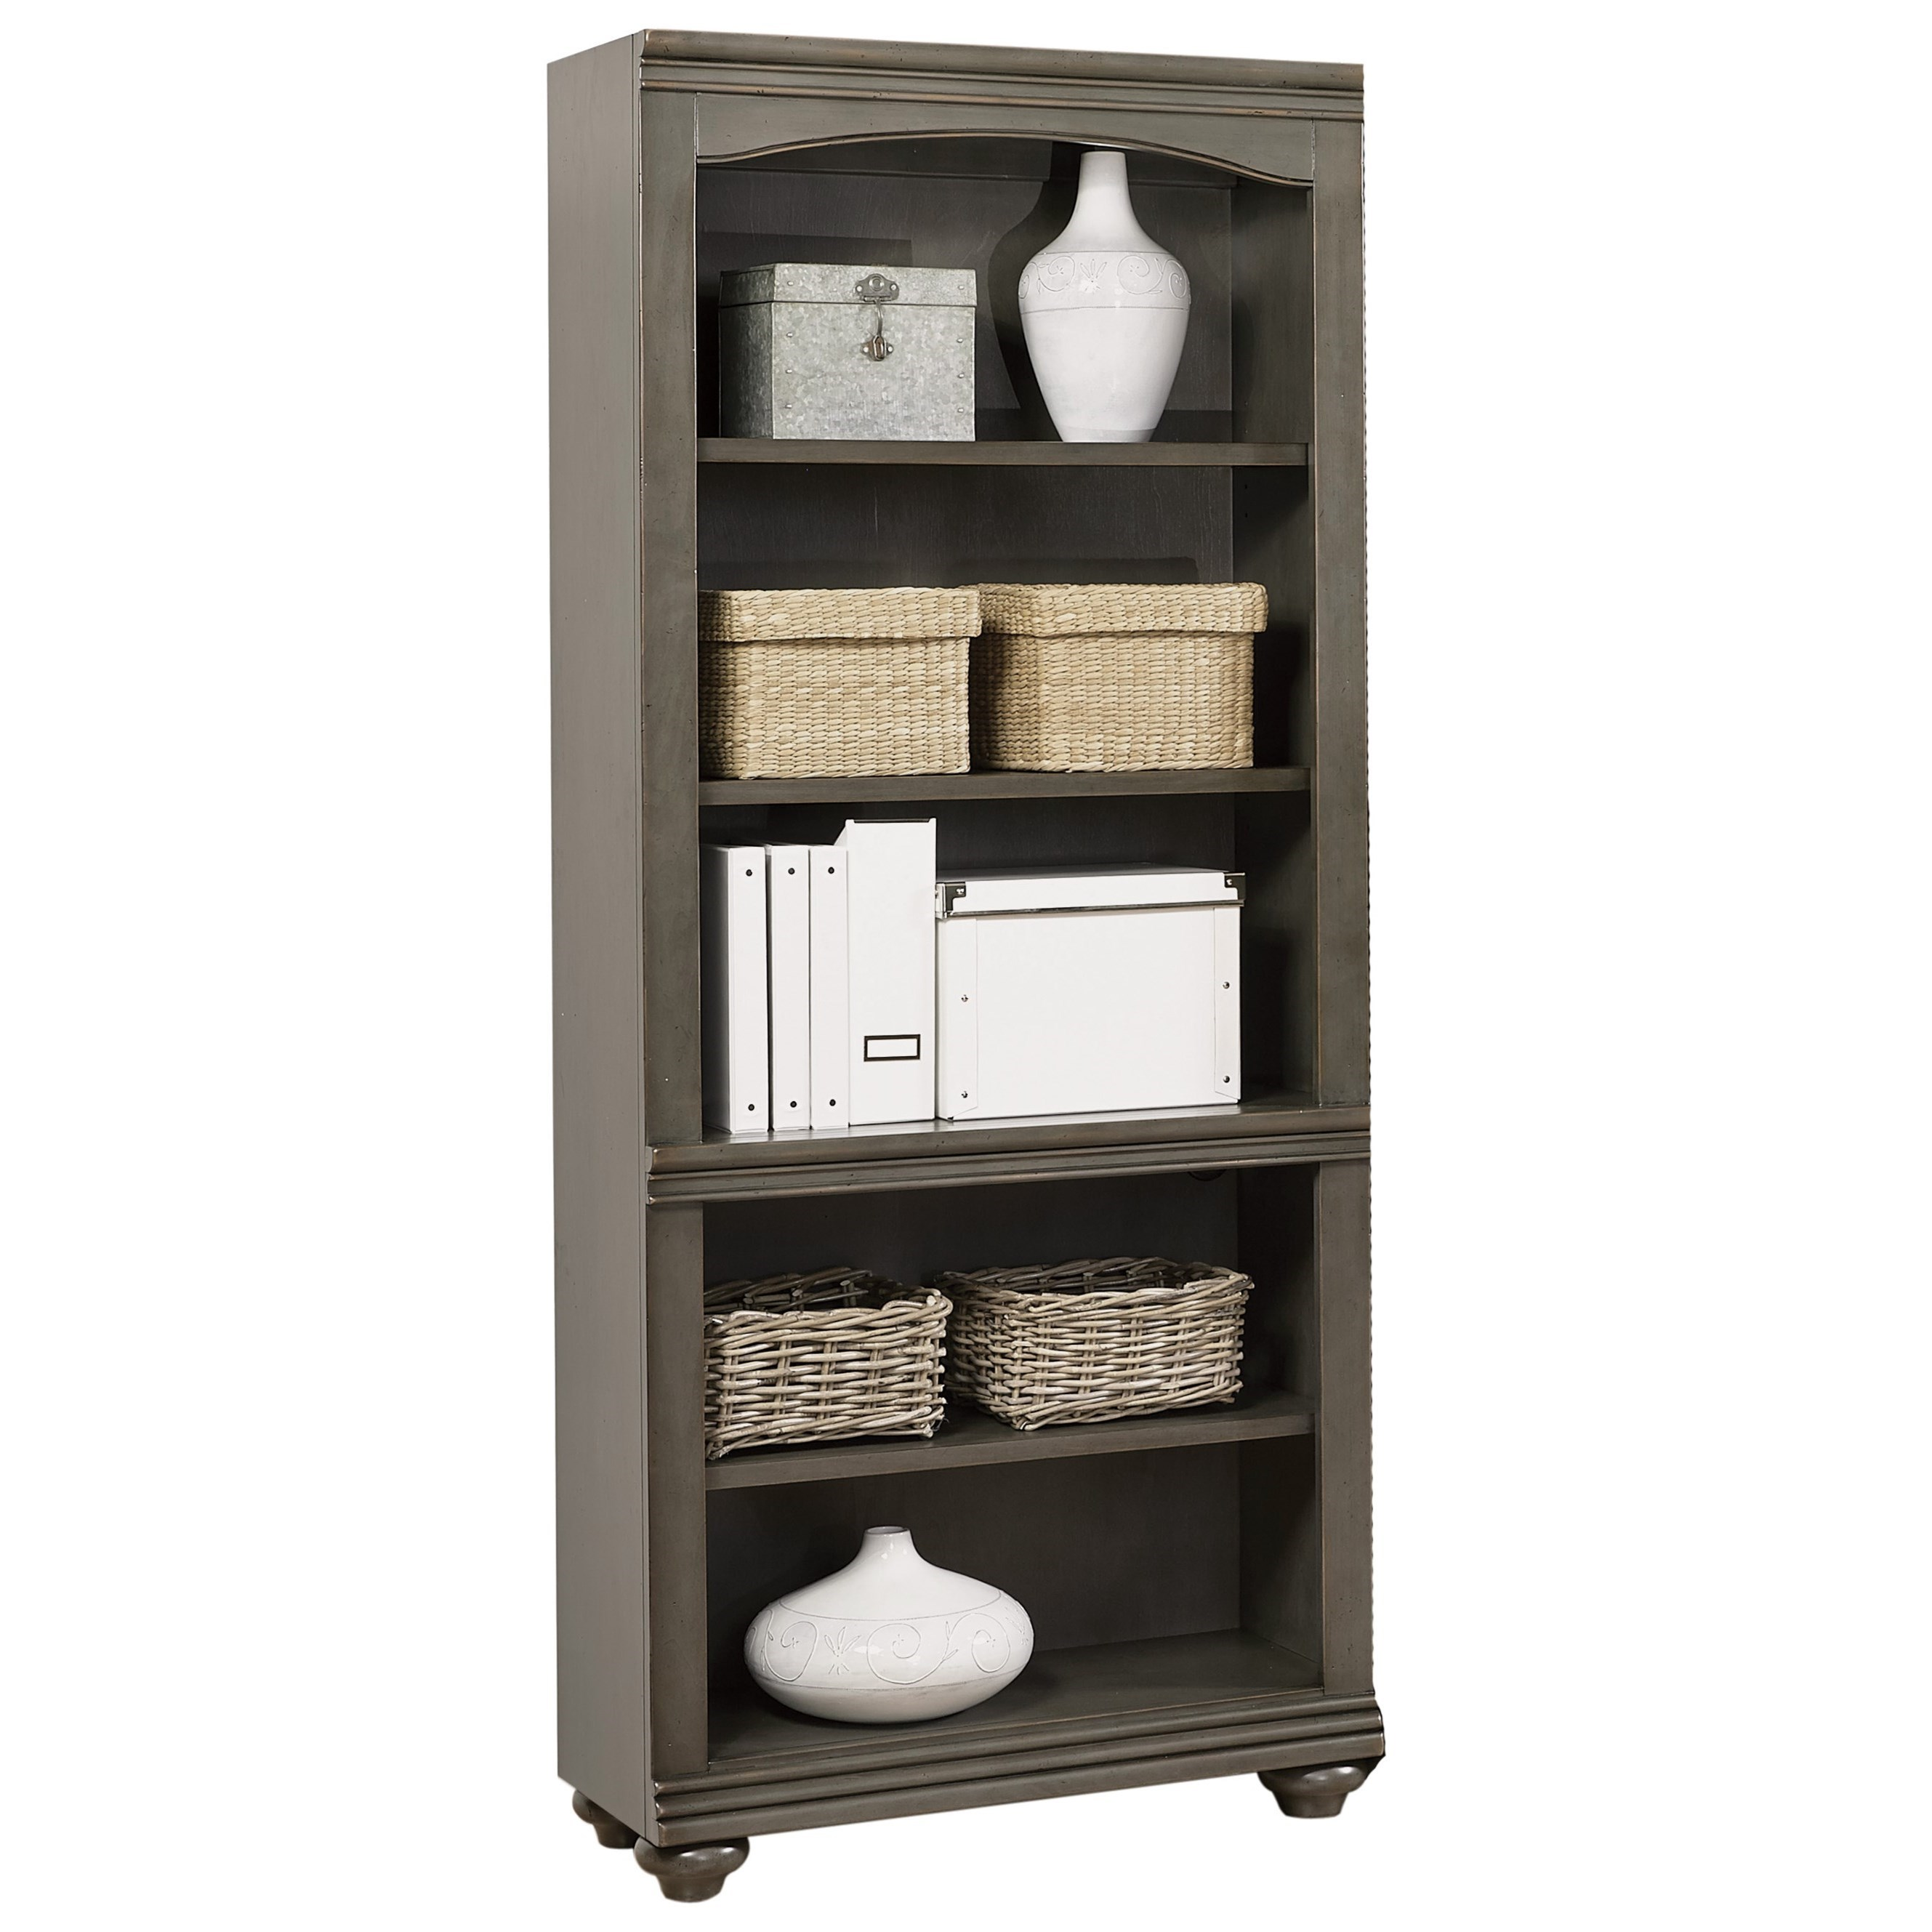 Oxford Bookcase by Aspenhome at HomeWorld Furniture